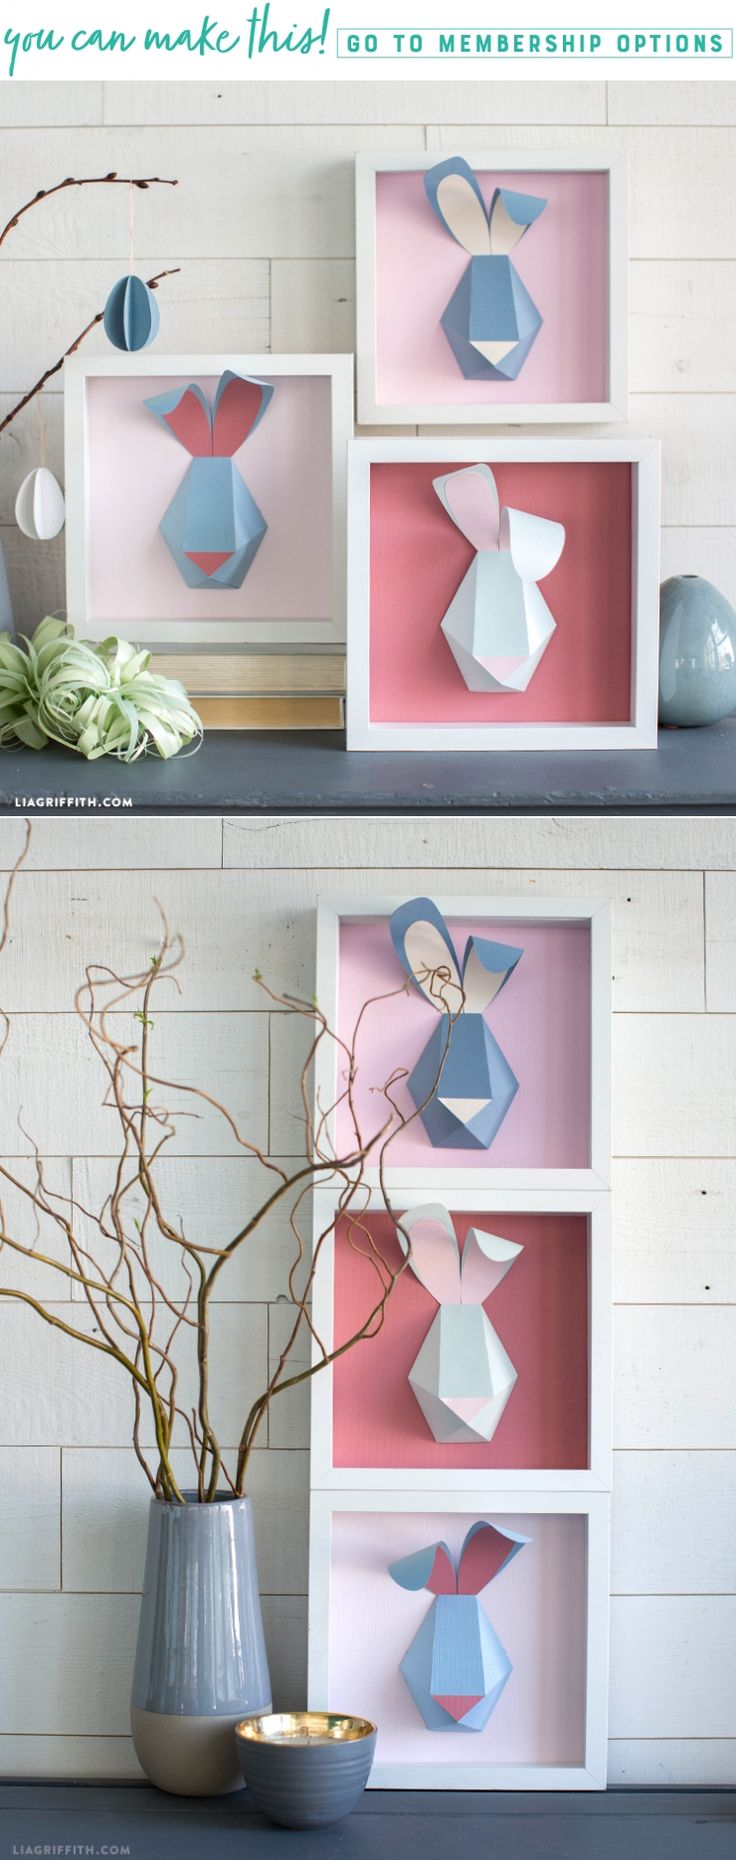 Somebunny to Love  We absolutely adore these modern 3D bunnies! Their geometric shape is cute, sleek, and a great way to incorporate bunny artwork for Easter. Learn how to craft your very own 3D bunny below to display in your home. https://liagriffith.com/3d-paper-bunny-artwork/ * * * #bunny #bunnys #modern #wallart #wallarts #frame #rabbit #easter #easterdecor #easter2018 #easterbunny #diy #diyidea #diyideas #diycraft #diycrafts #diyproject #diyprojects #paper #paperlove #papercut #paperart…